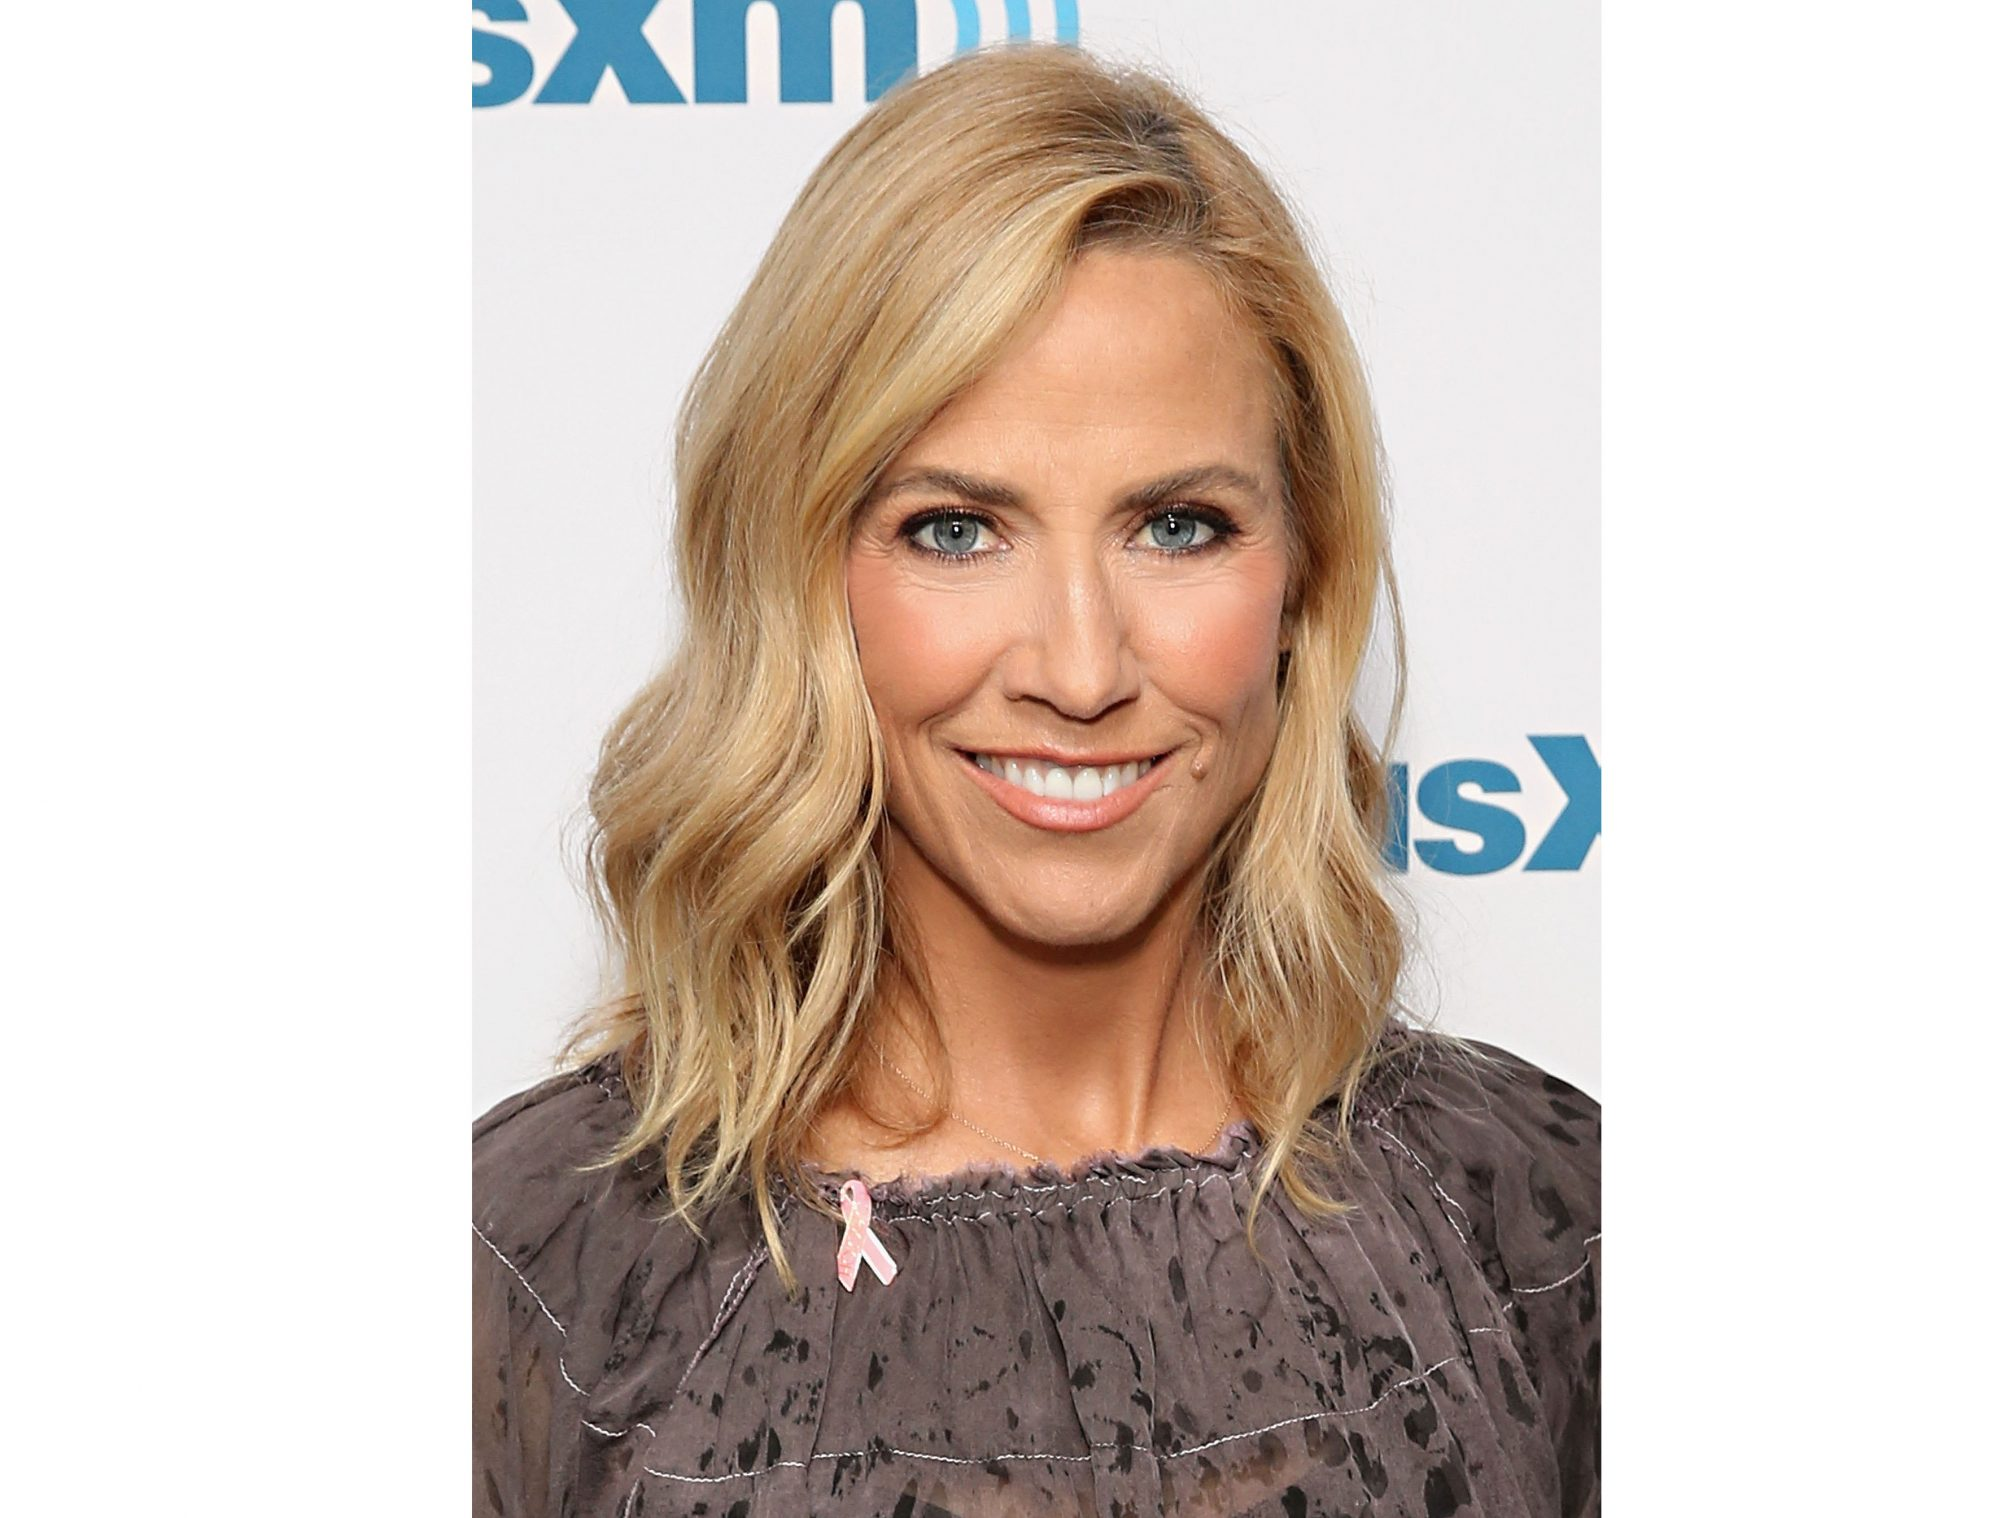 Breast Cancer Survivor Sheryl Crow Writes a Heartfelt Message to Women: 'Stop Making Excuses' and Get Checked